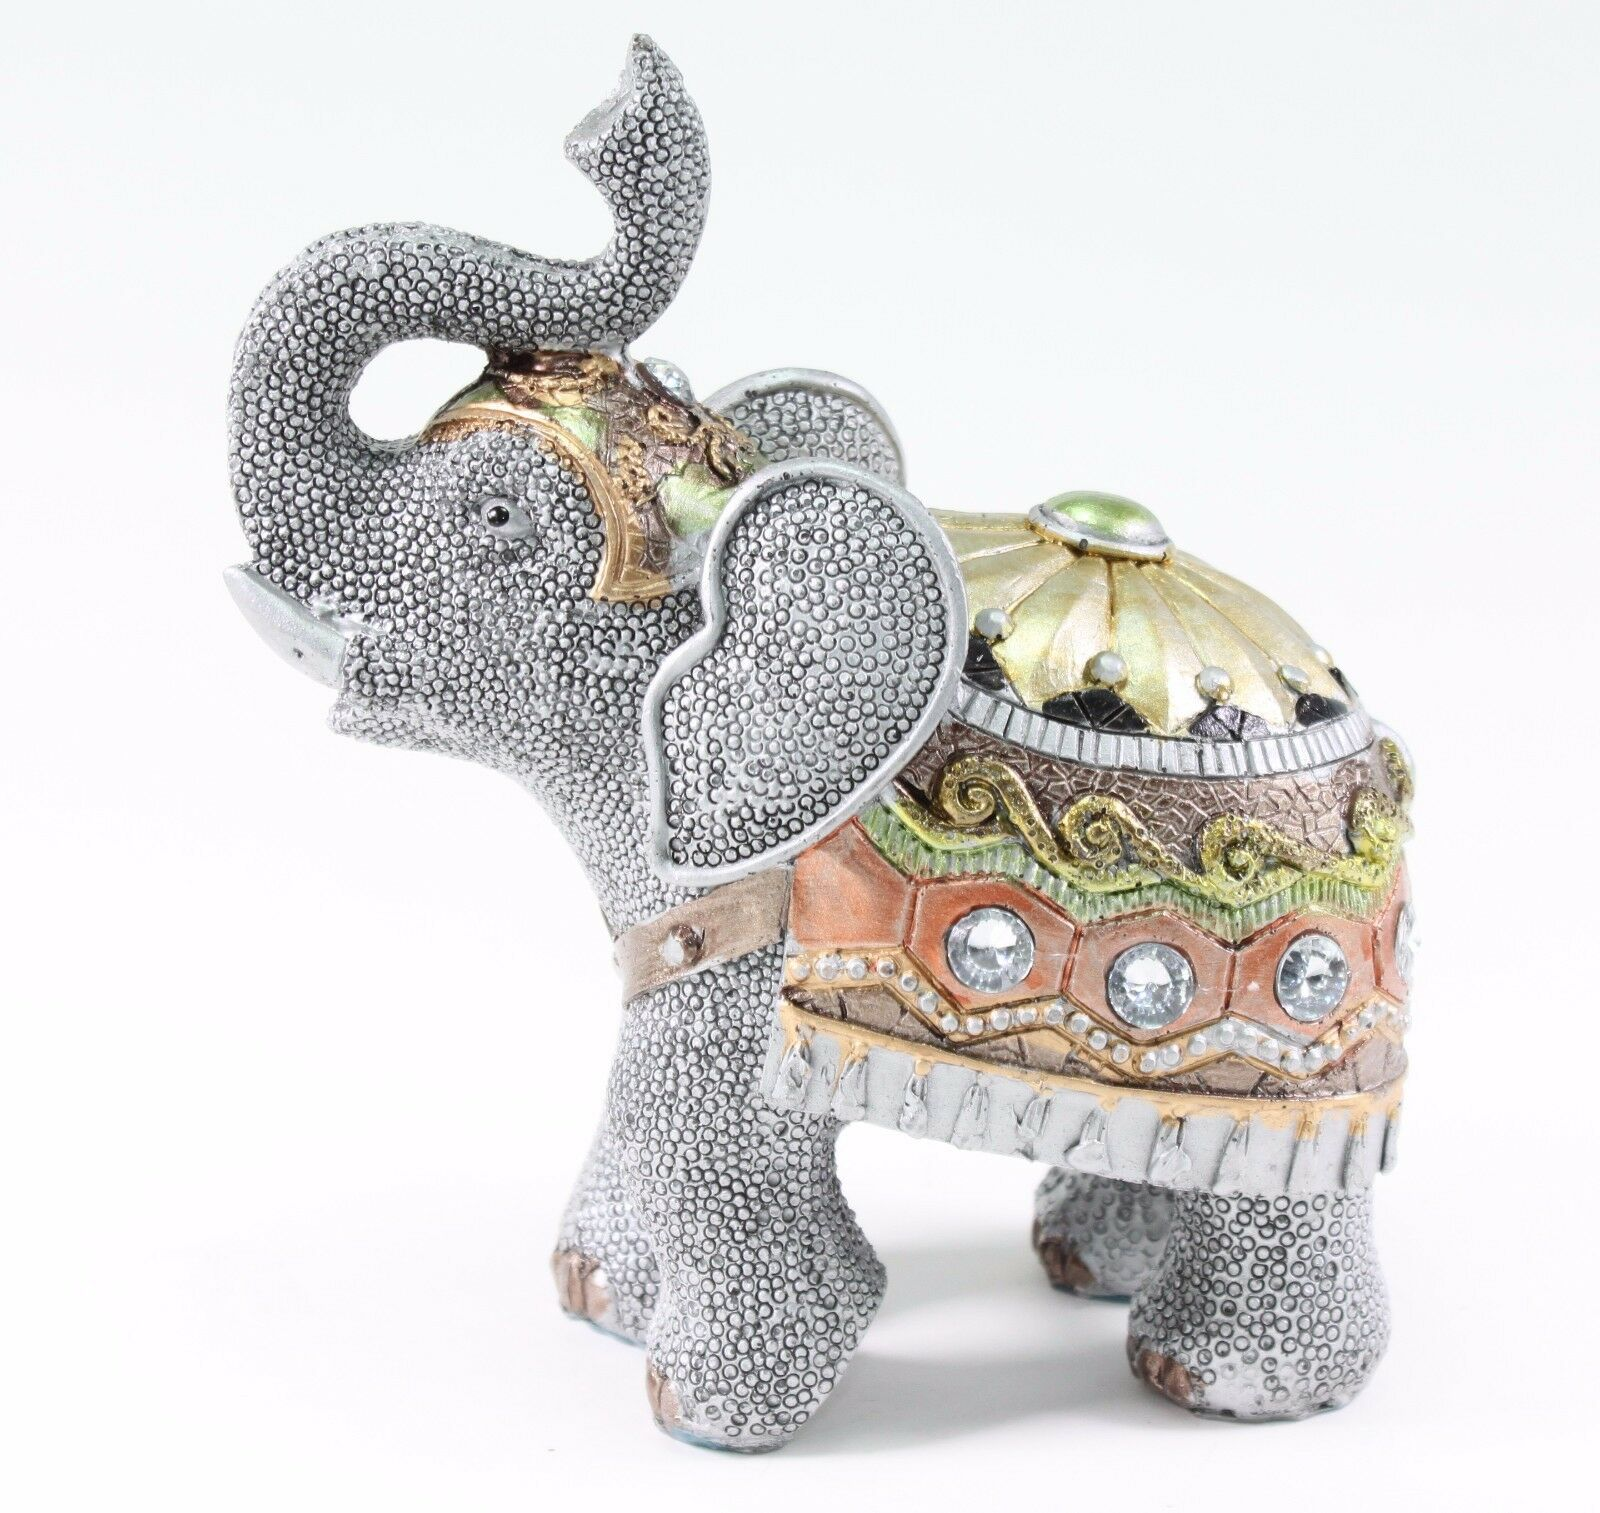 Feng shui 6 5 gray elephant trunk statue lucky figurine gift home decor ebay Elephant home decor items